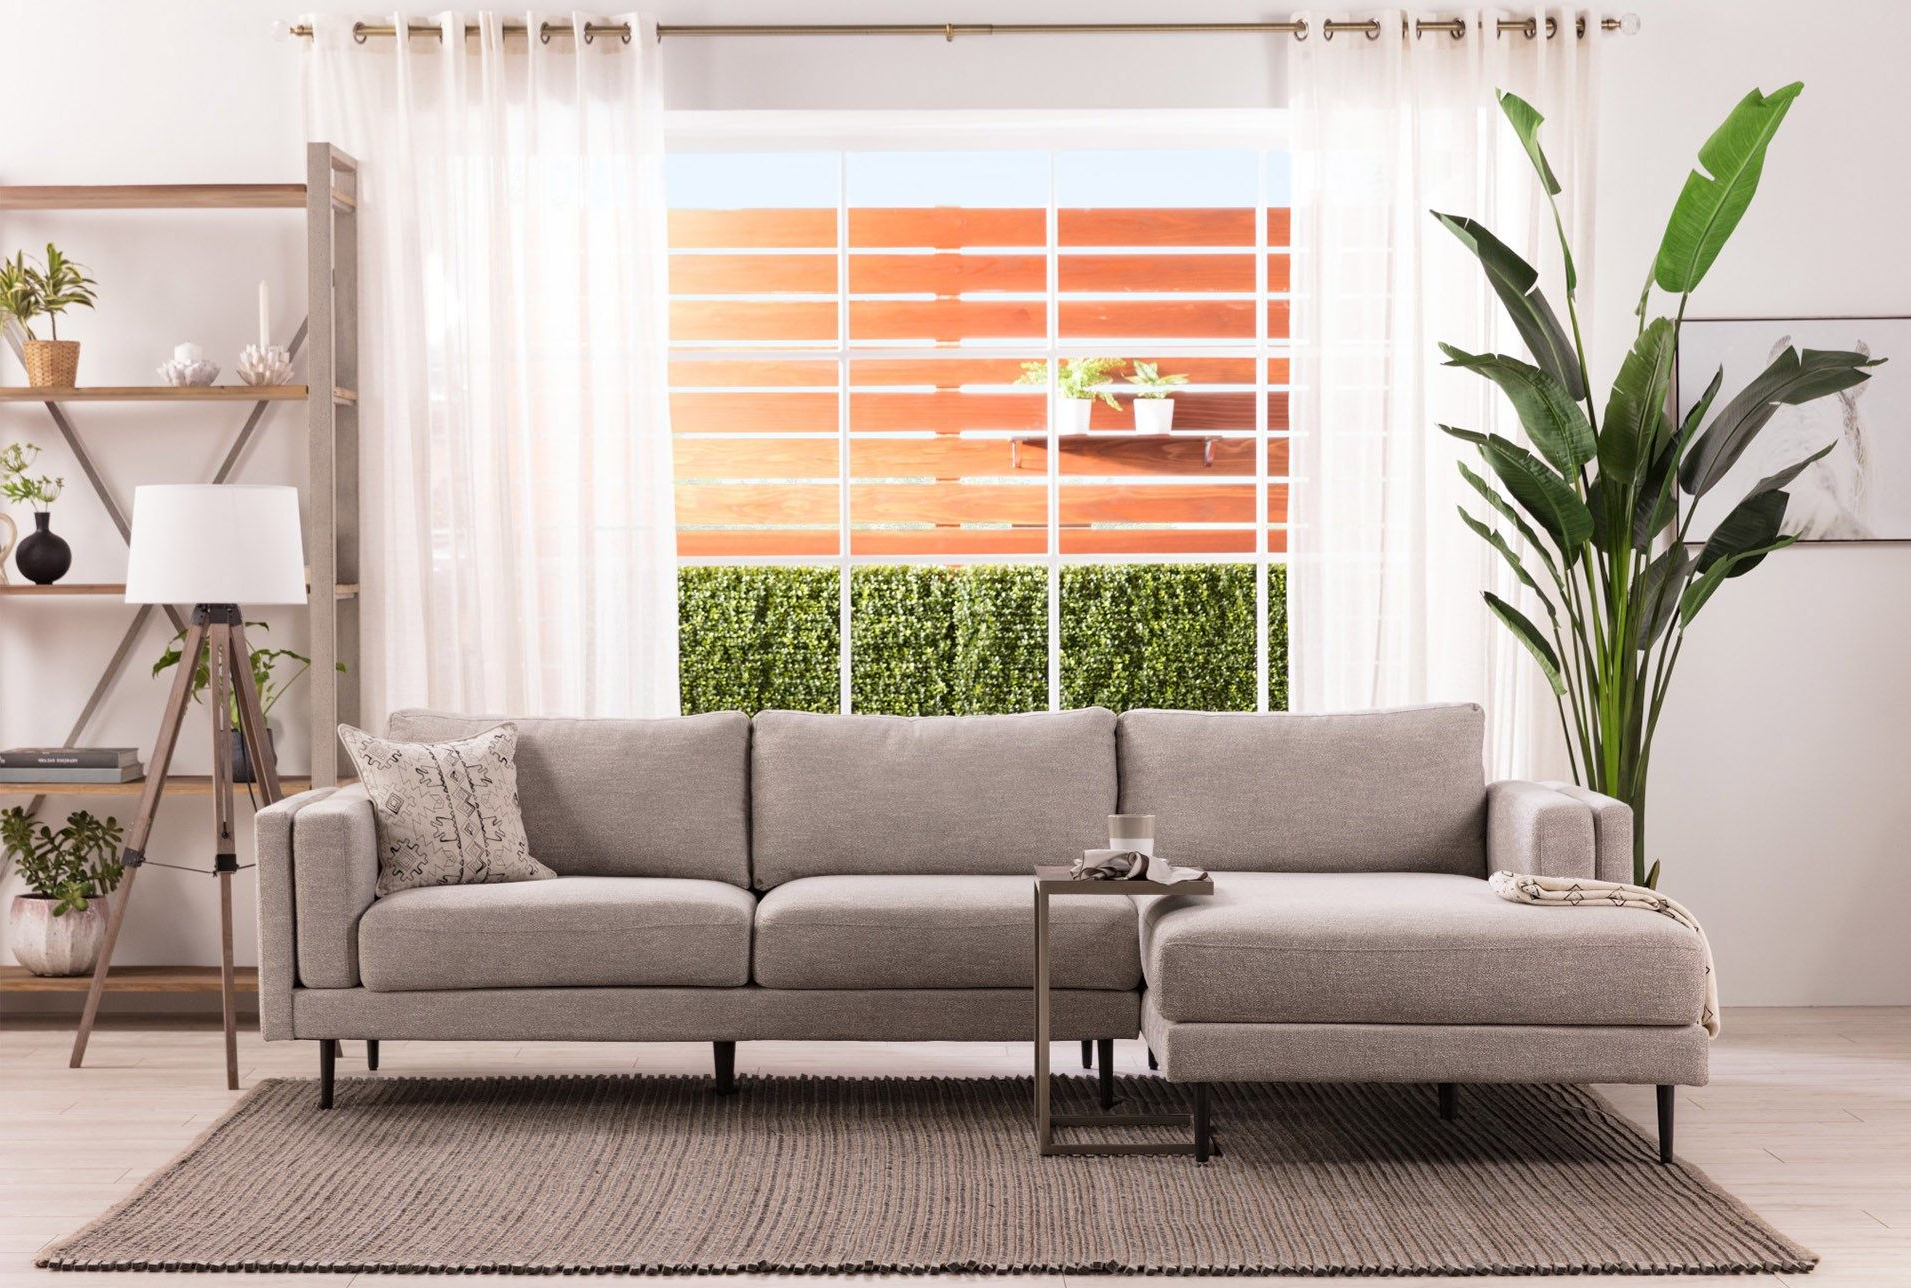 Aquarius Light Grey 2 Piece Sectional W/laf Chaise (View 2 of 20)